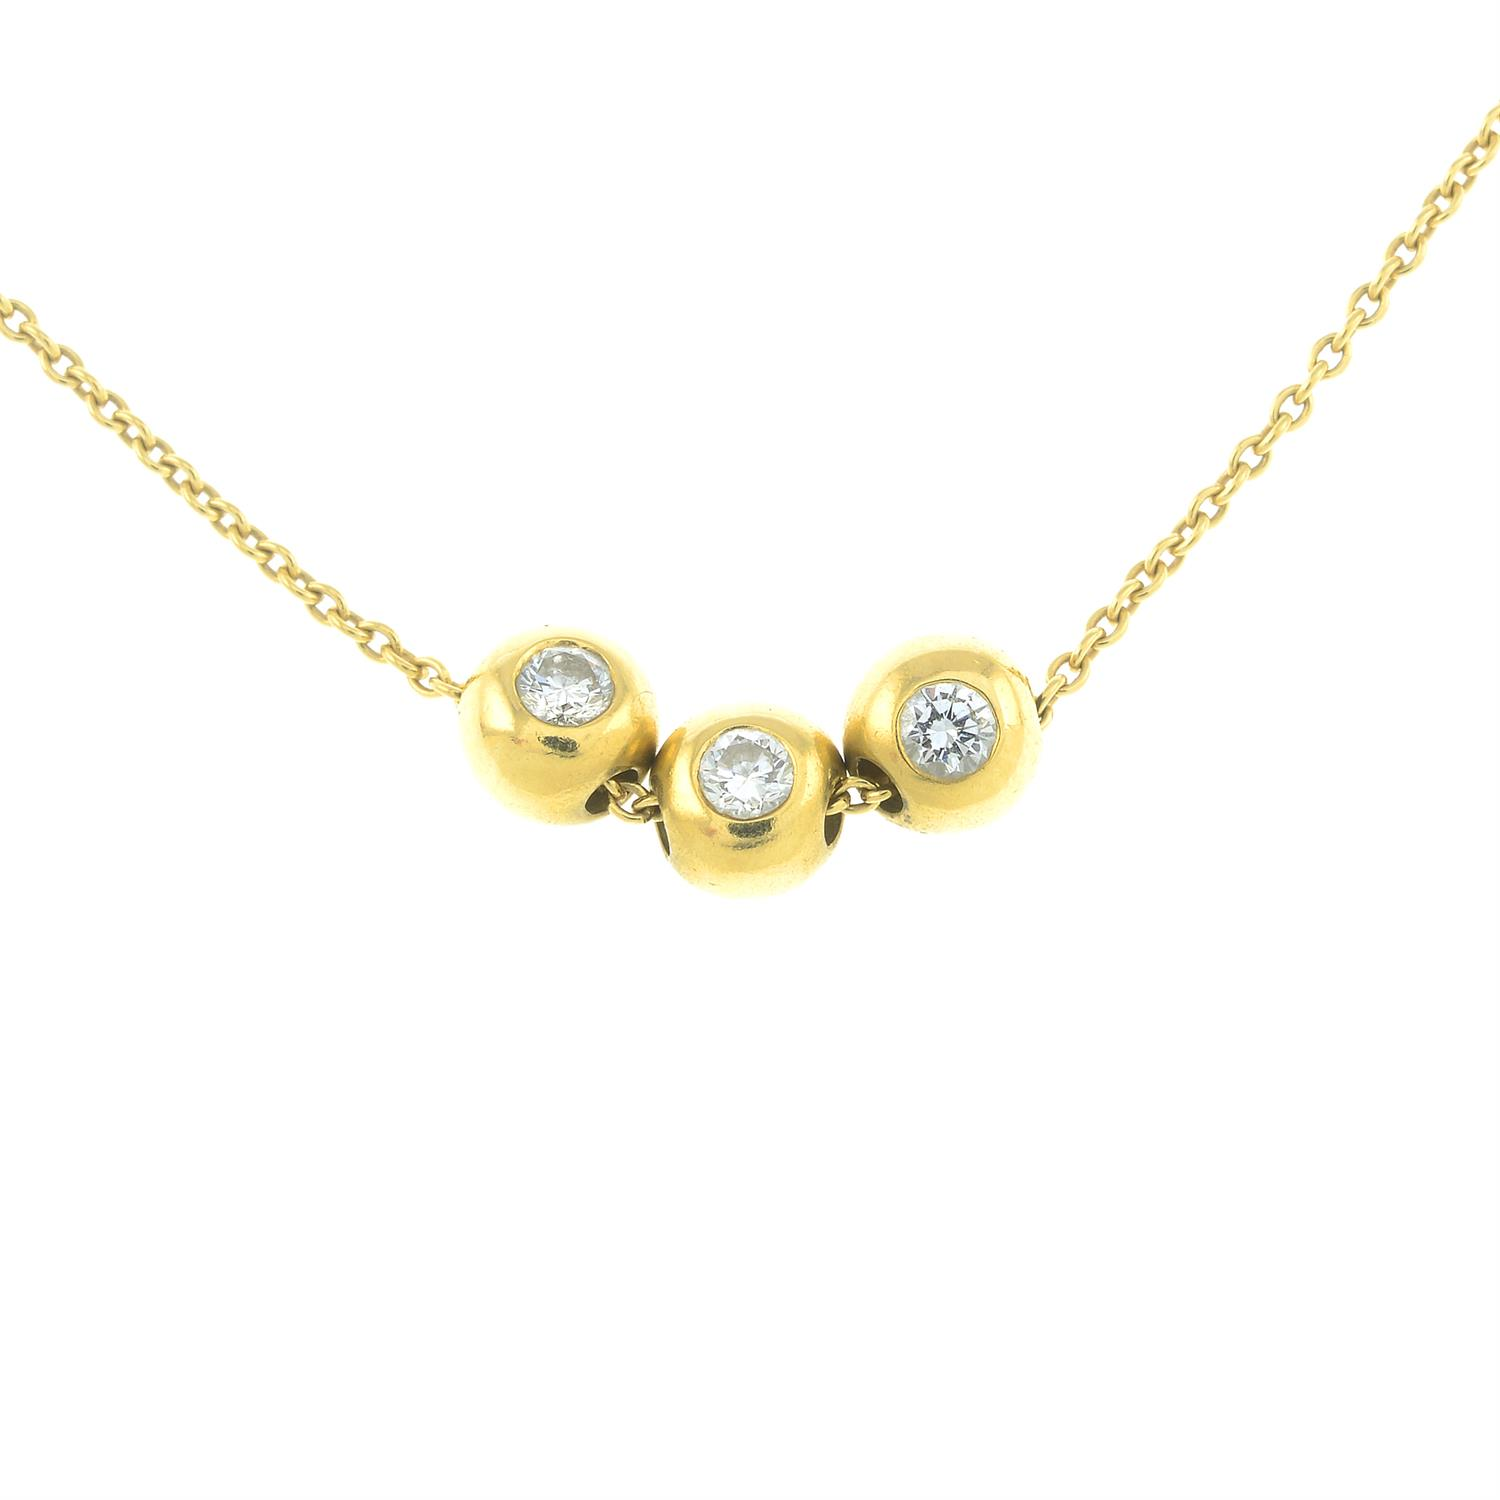 An 18ct gold necklace, with free-moving brilliant-cut diamond ball highlights, by Boodles &